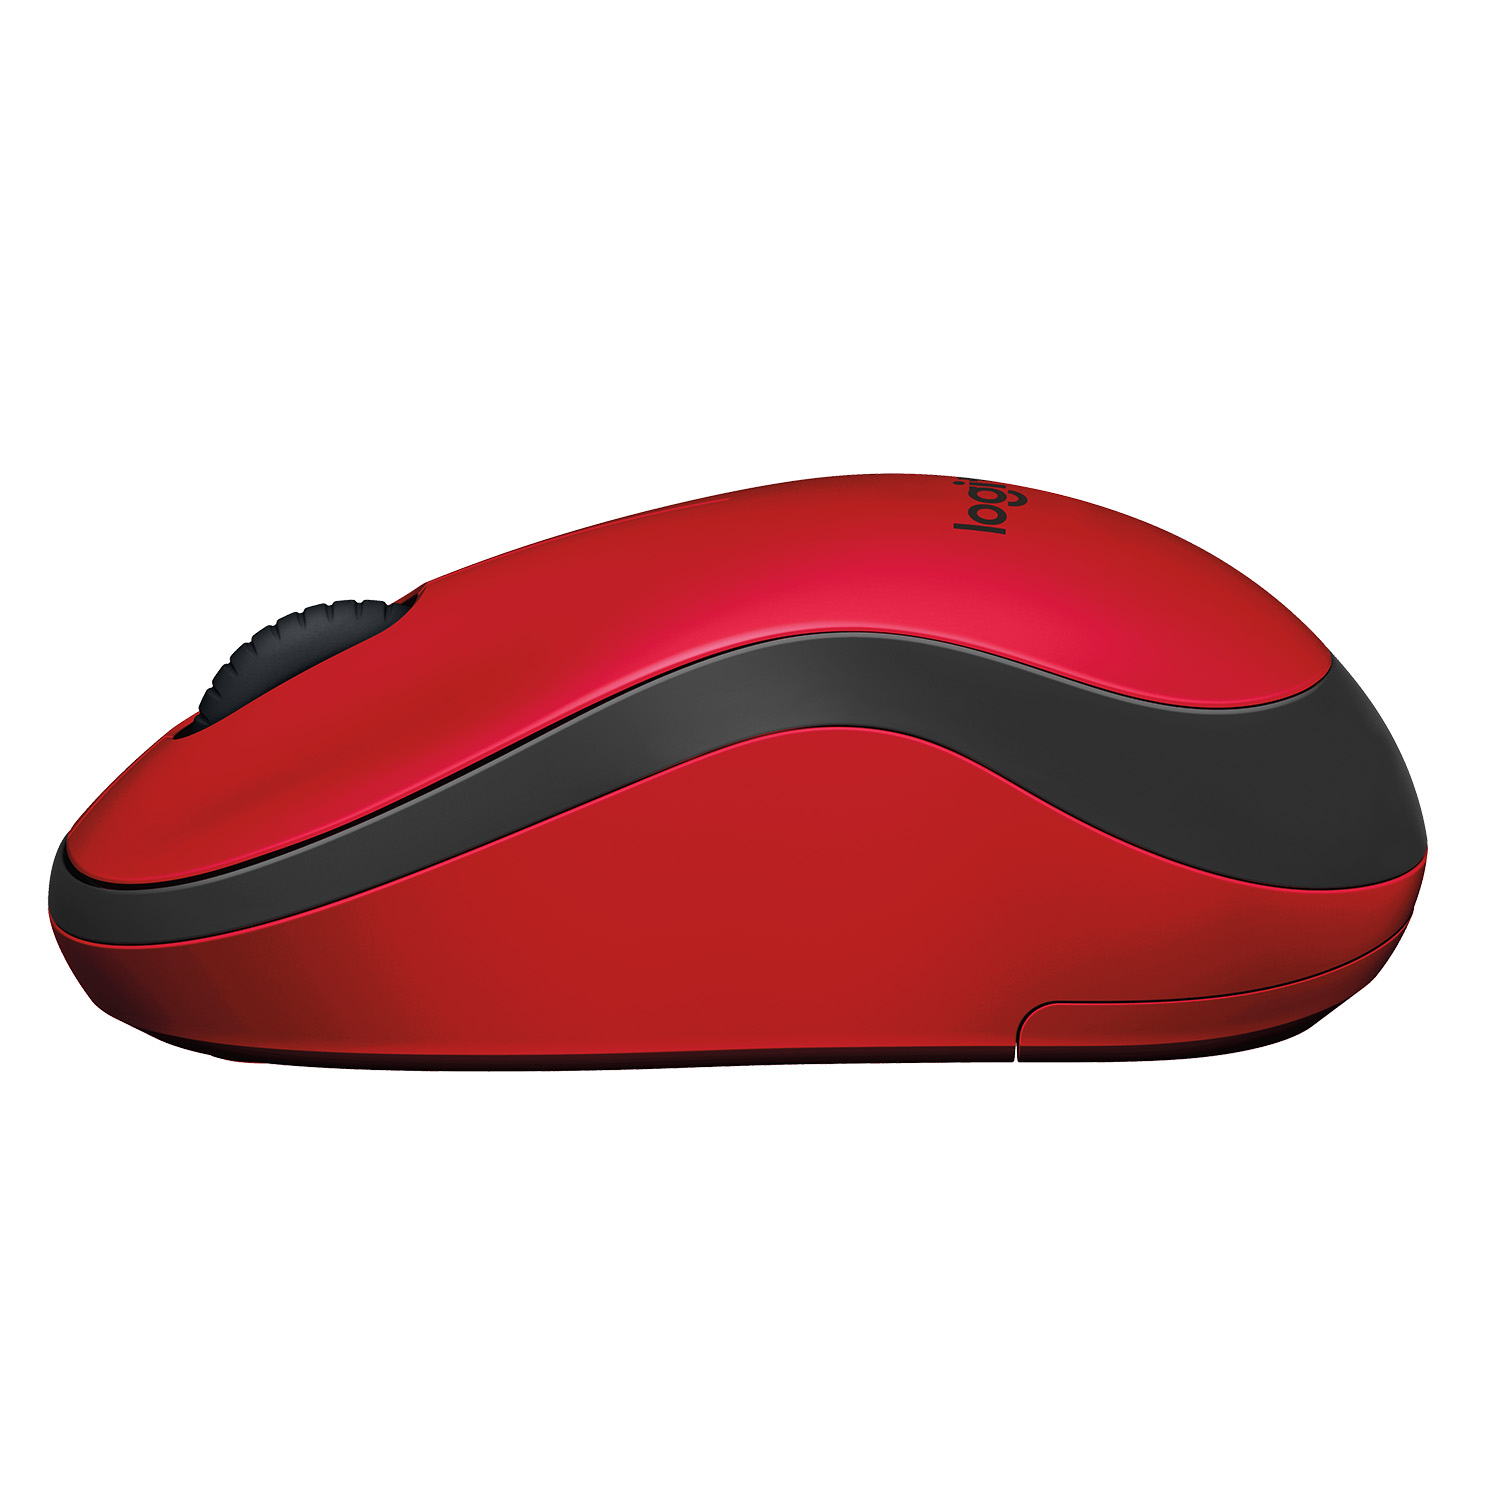 M220 Silent Mouse (USB wireless receiver, rood)